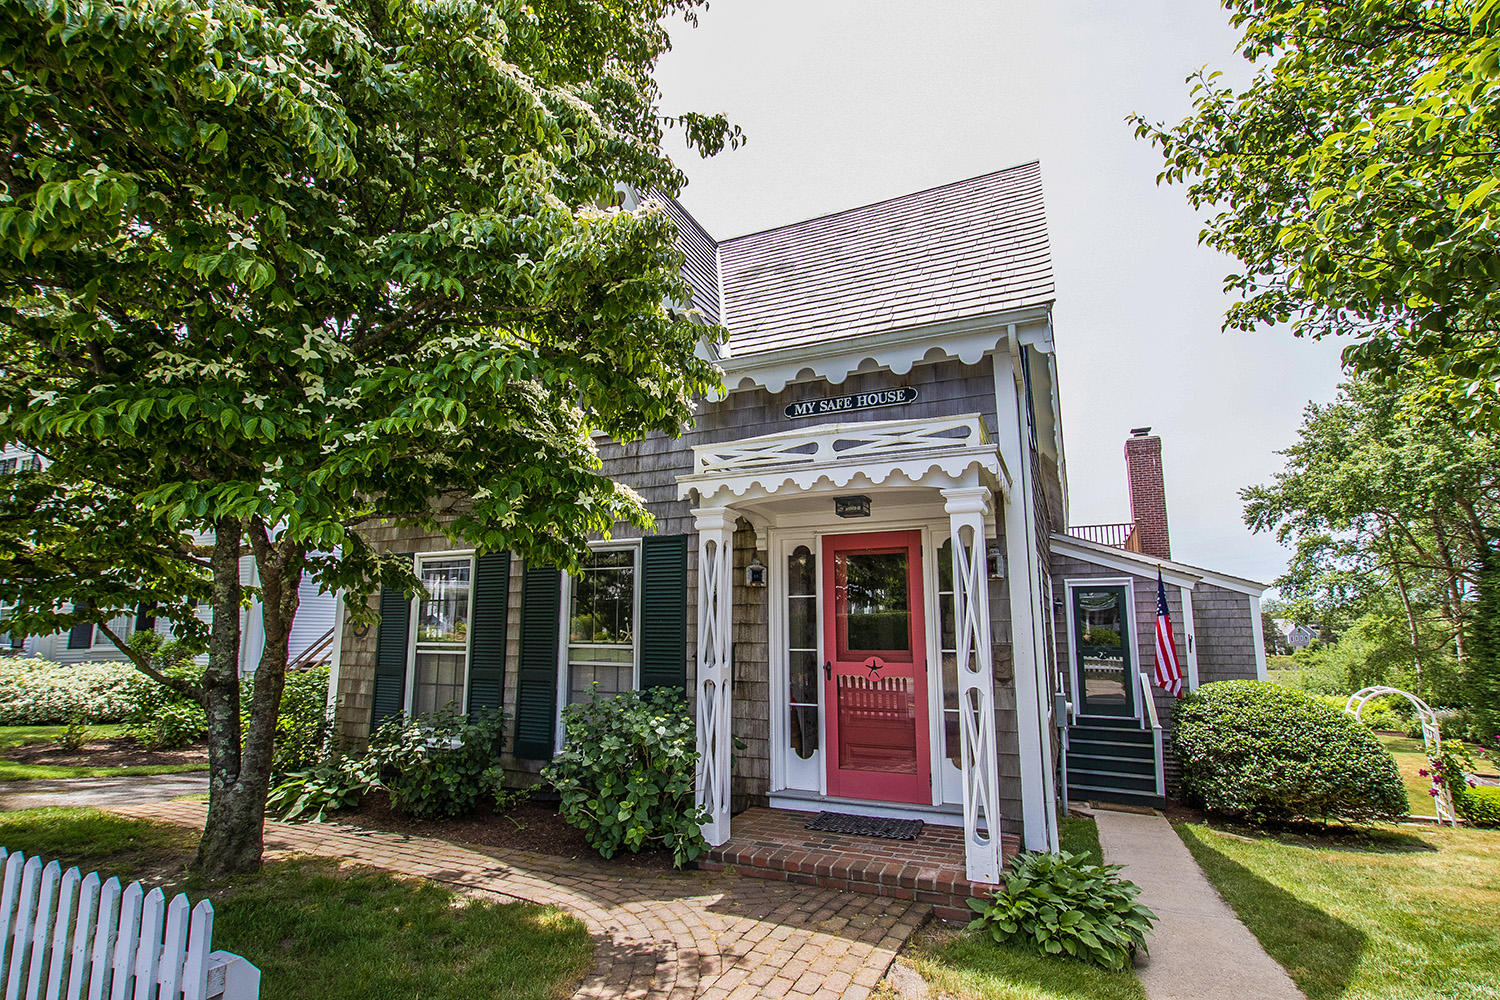 331 Main Street, Chatham MA, 02633 sales details